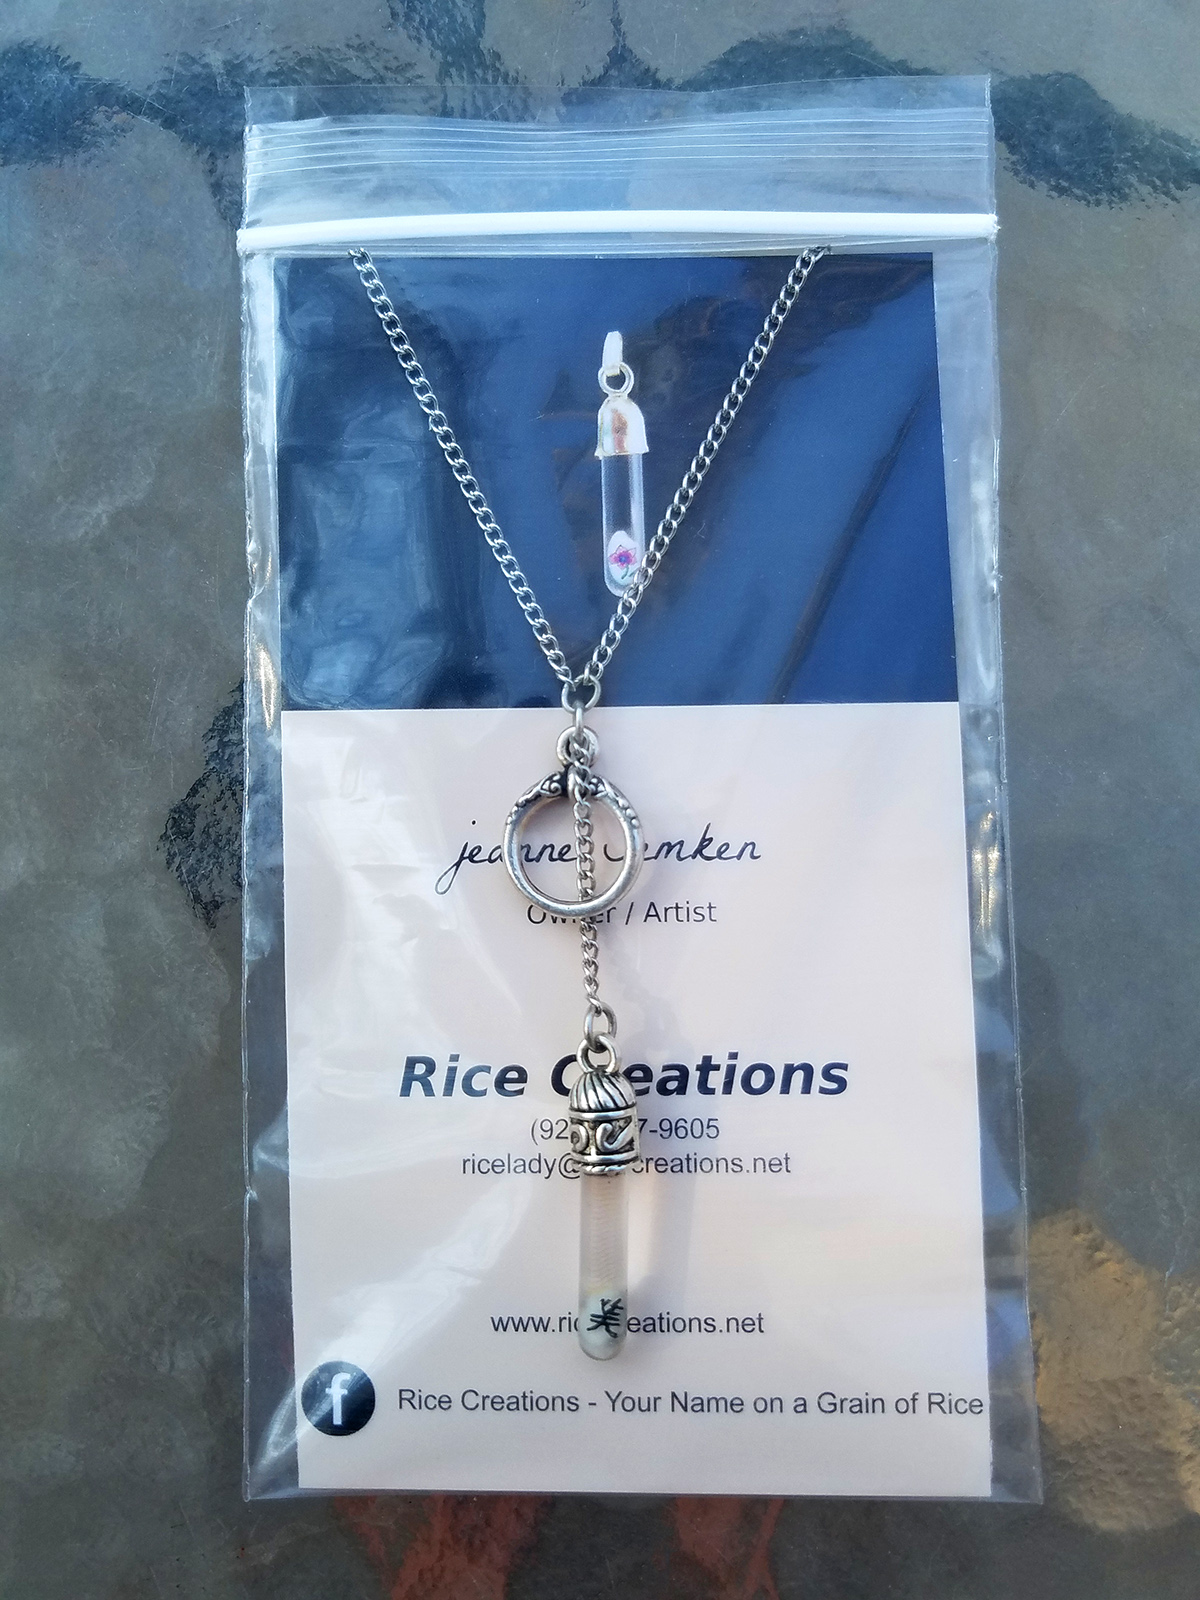 Rice Creations UPritning Business Card